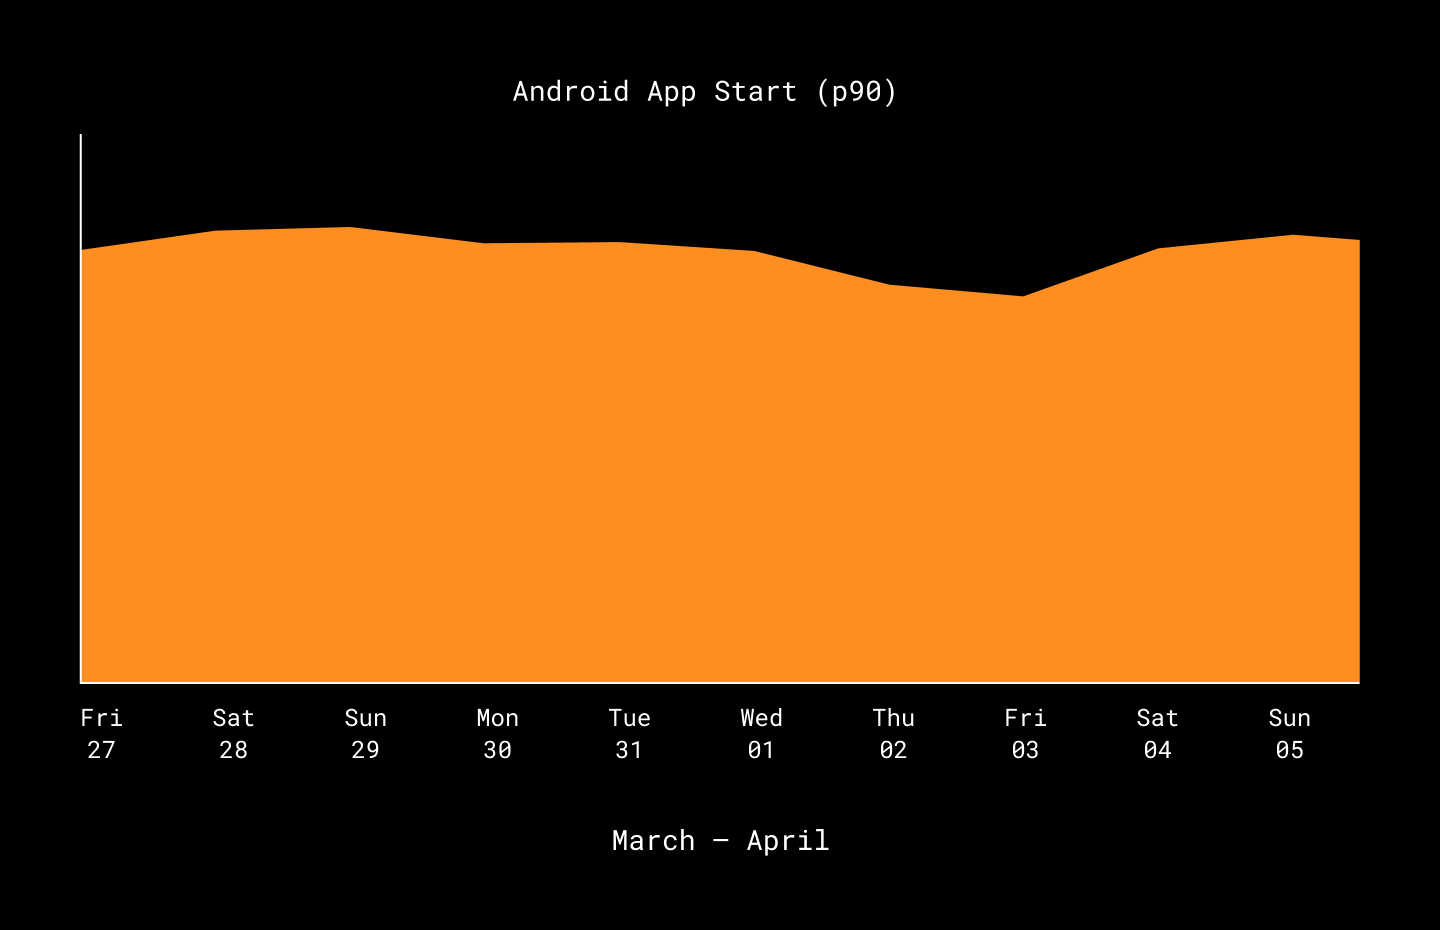 app startup p90 measurements from late March to early April 2020